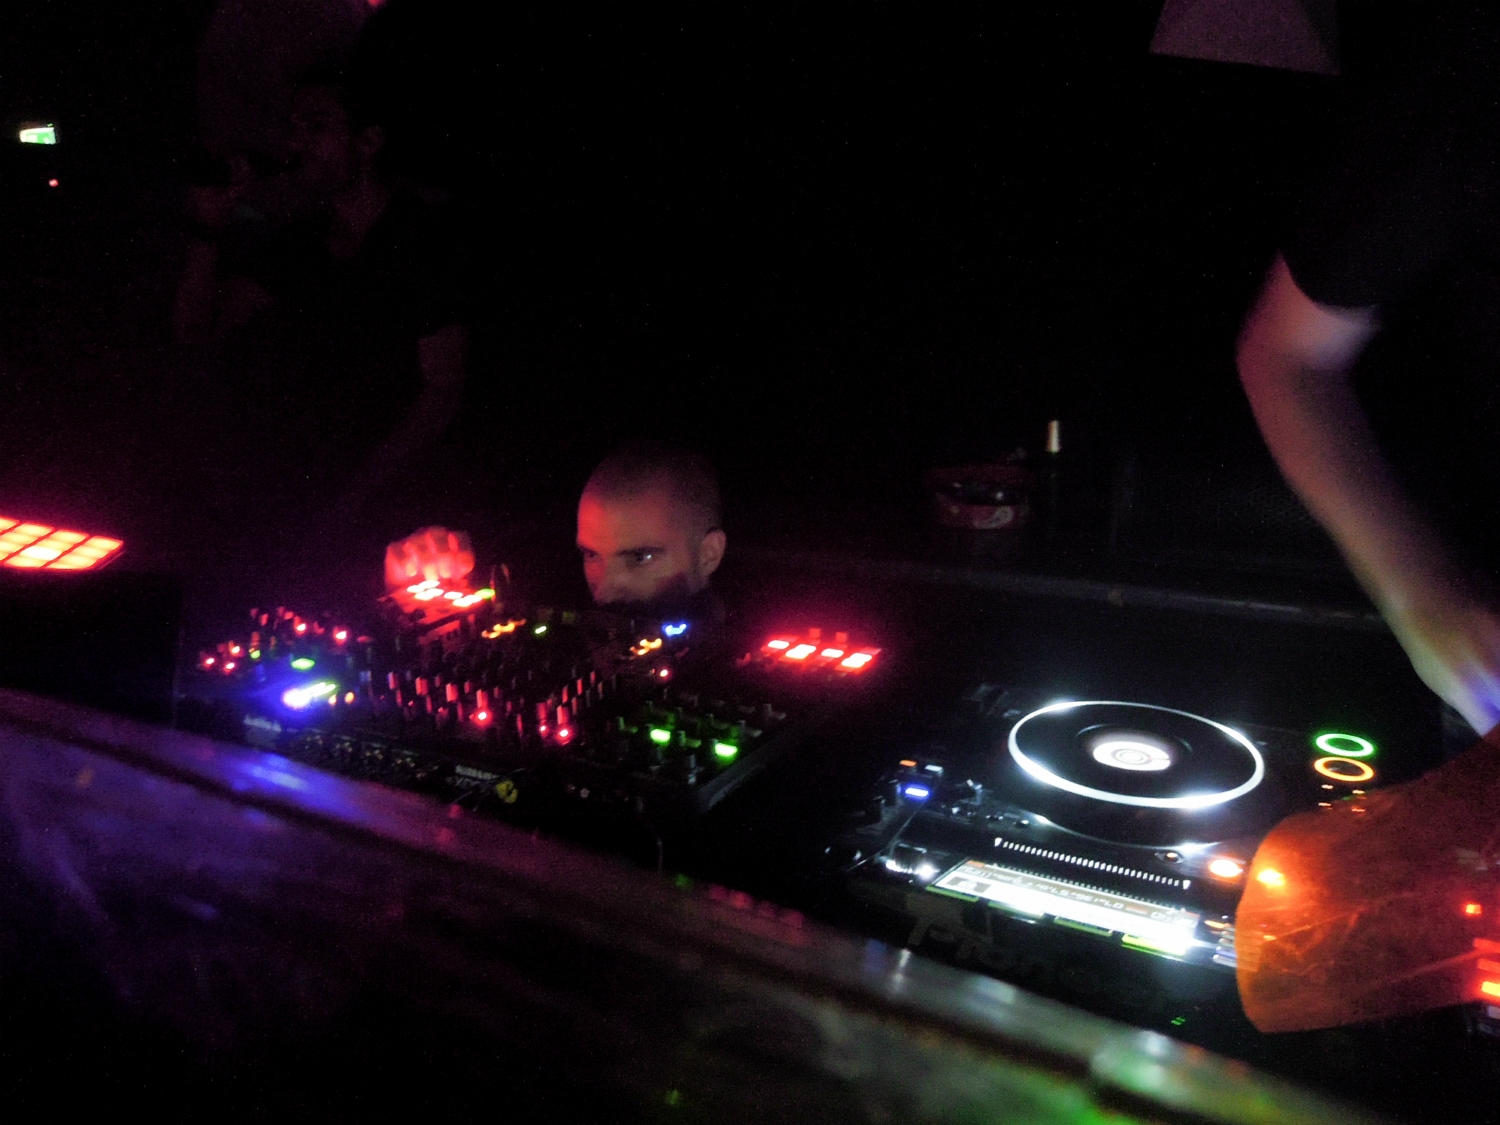 Chris Liebing zu Gast in der Distillery in Leipzig